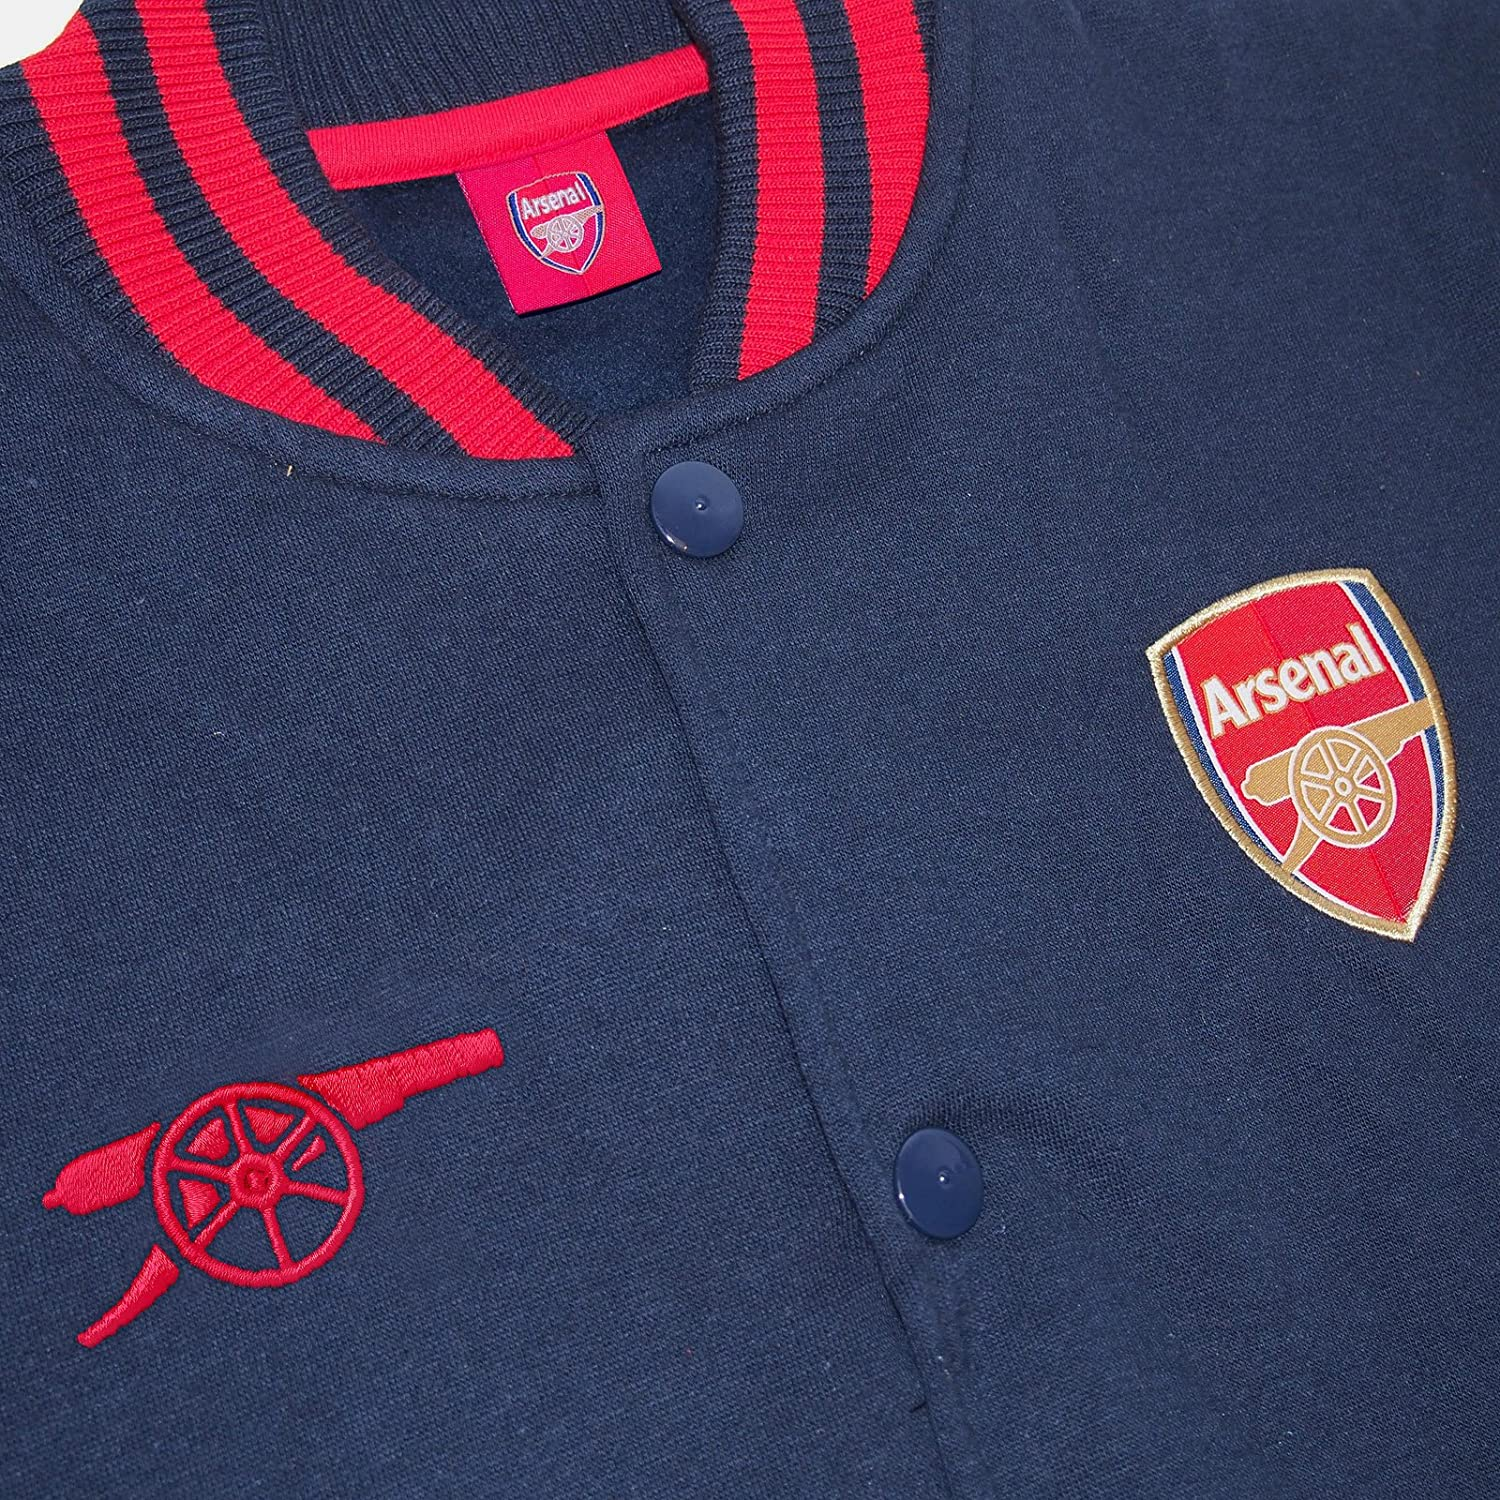 Arsenal FC Official Football Gift Boys Retro Varsity Baseball Jacket Navy